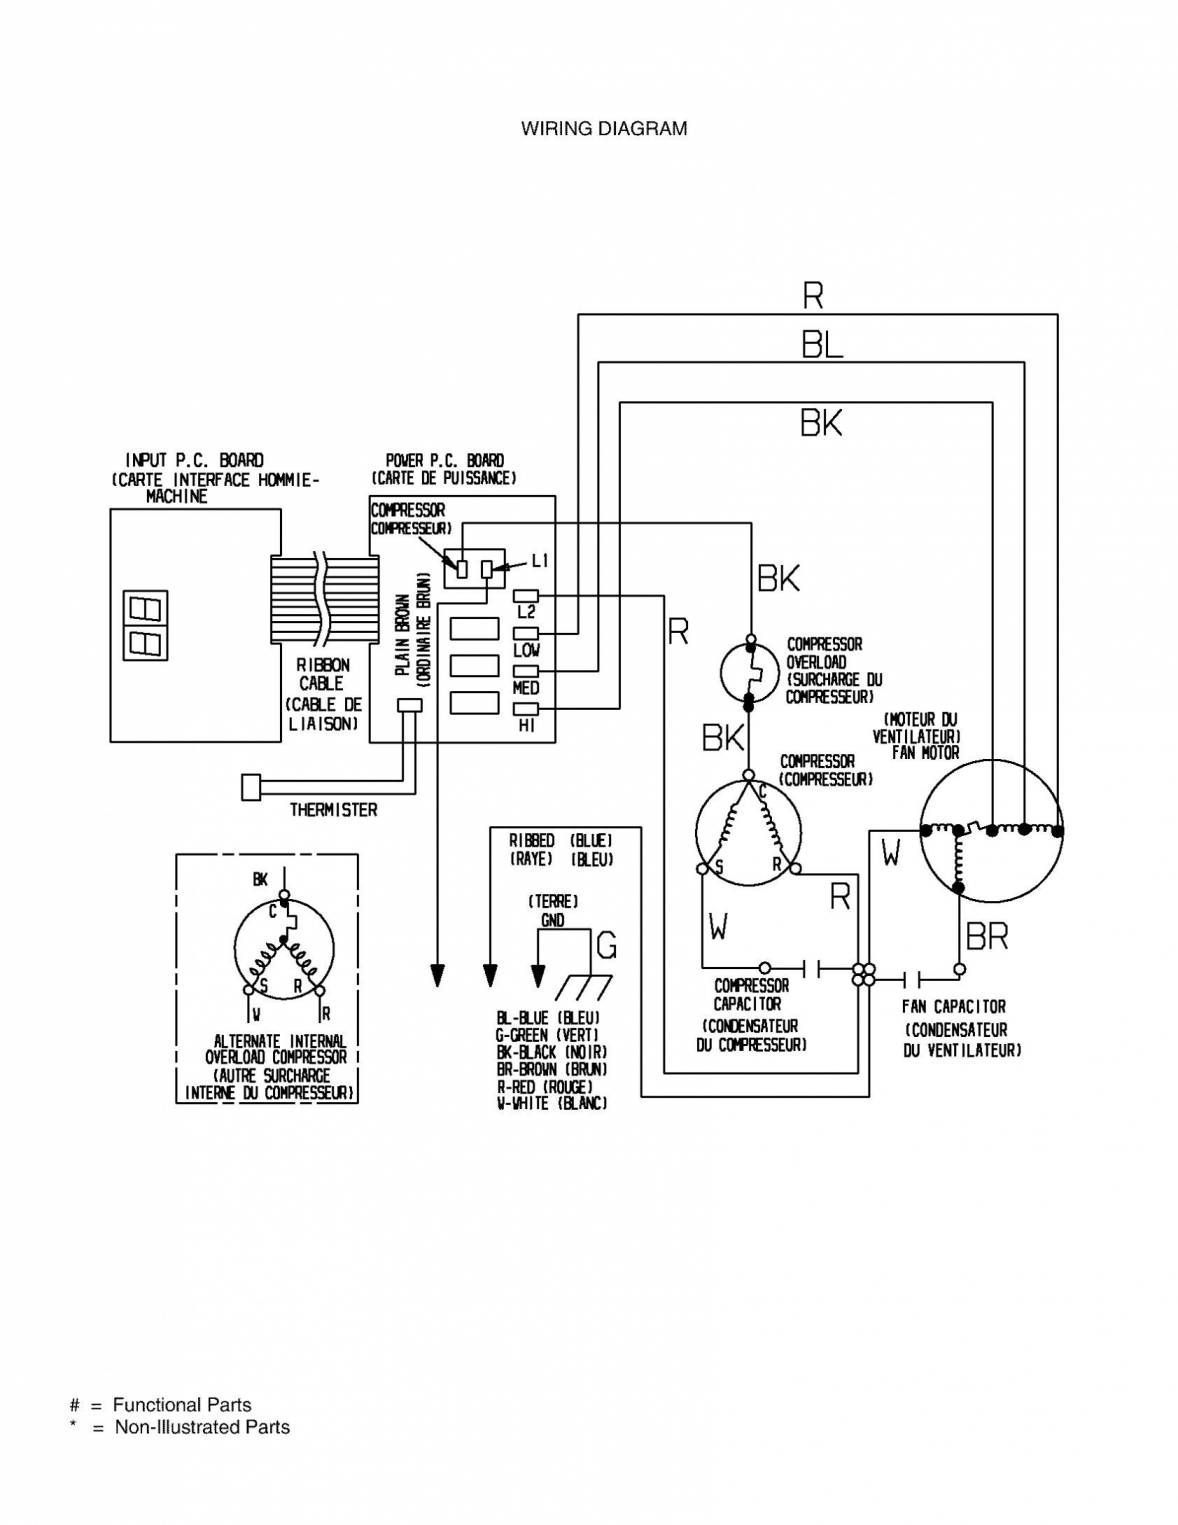 10 Rv Electrical Wiring Diagram In 2020 Electrical Wiring Diagram Circuit Diagram Diagram Design